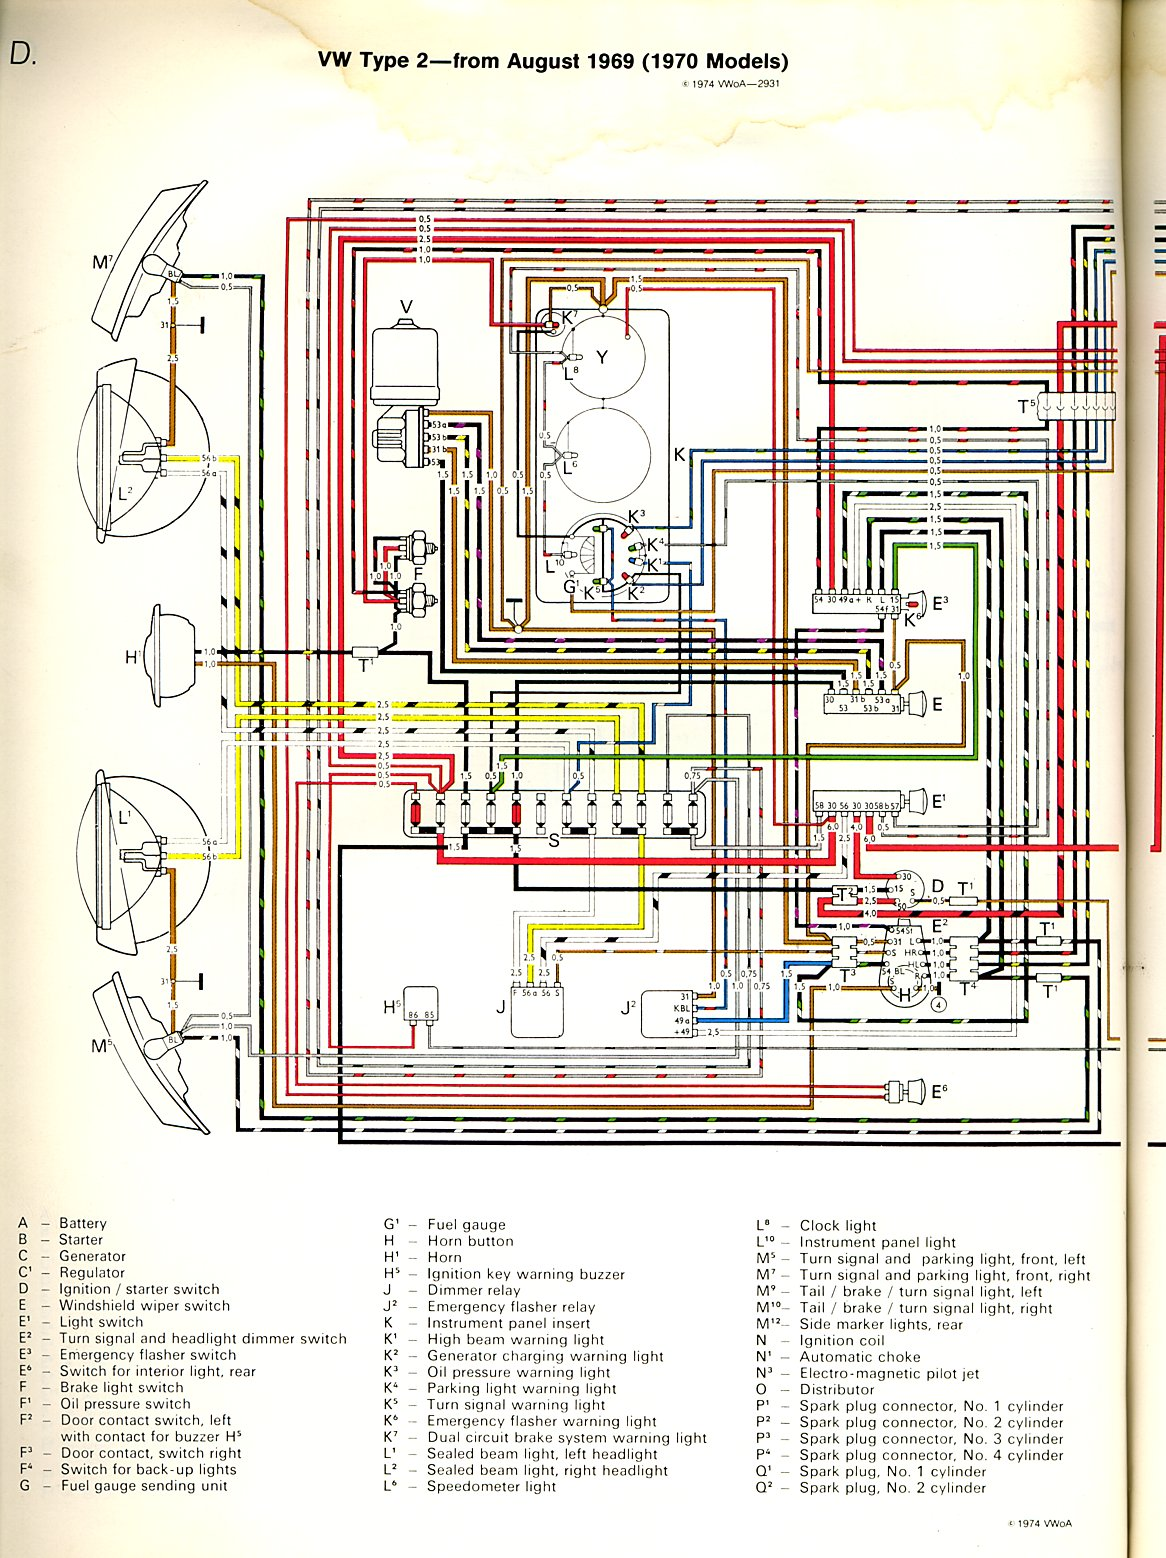 baybus_70a thesamba com type 2 wiring diagrams 68 VW Wiring Diagram at mifinder.co